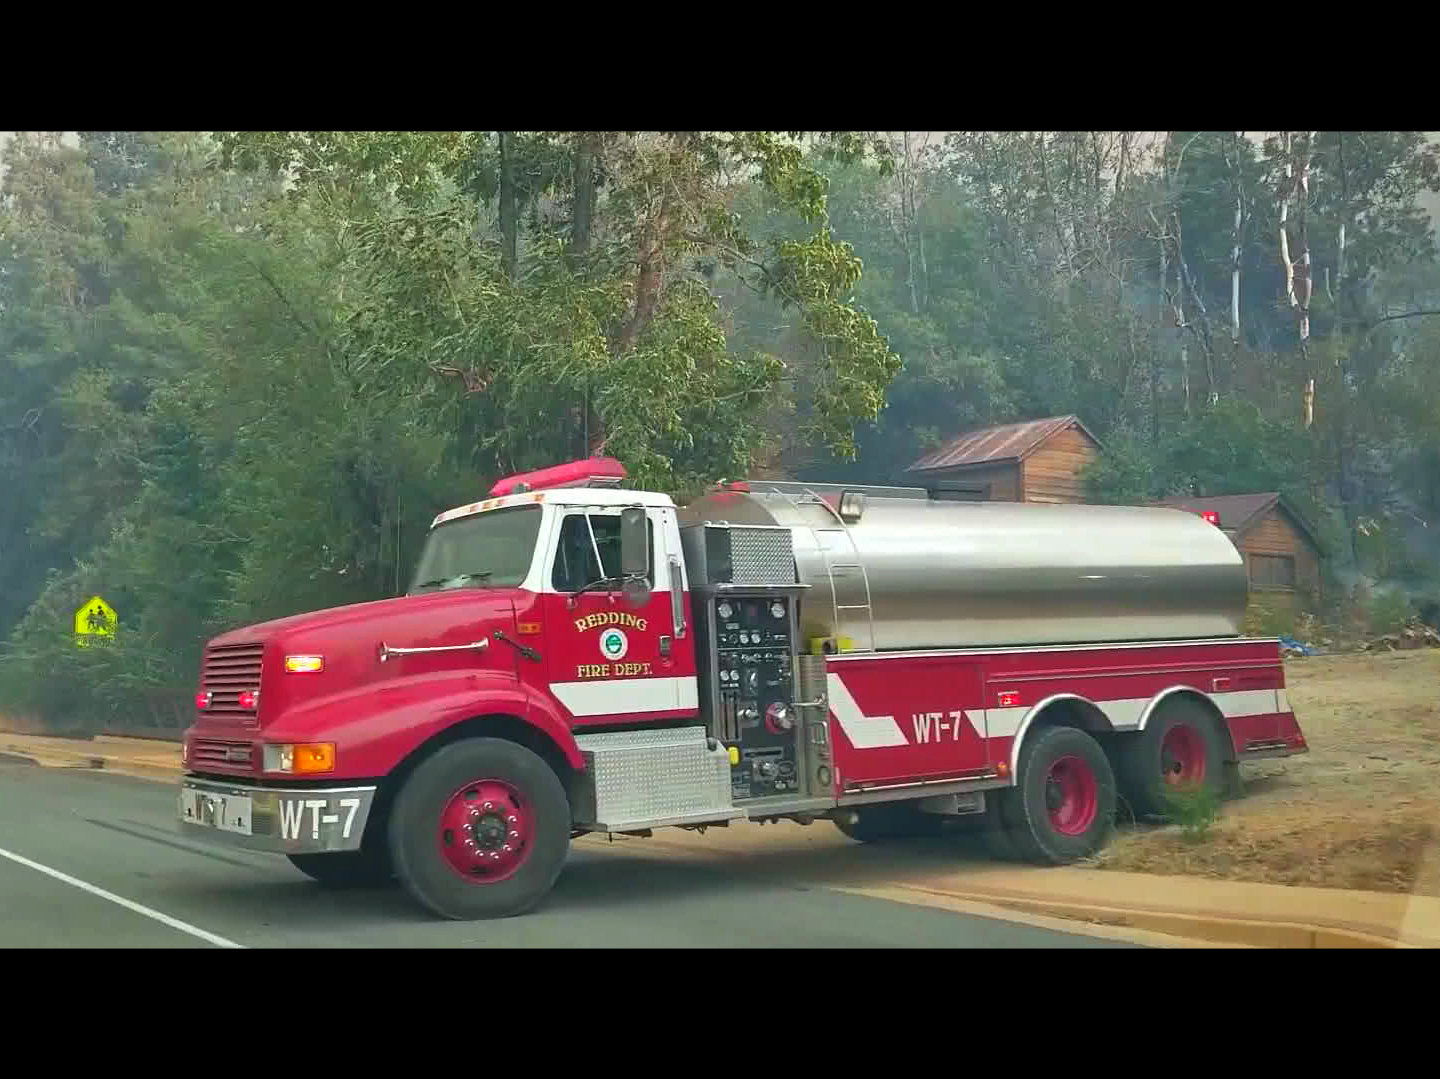 """Still from the film """"Stronger than Carr:"""" The film documents the heroism and kindness that followed the Carr Fire."""